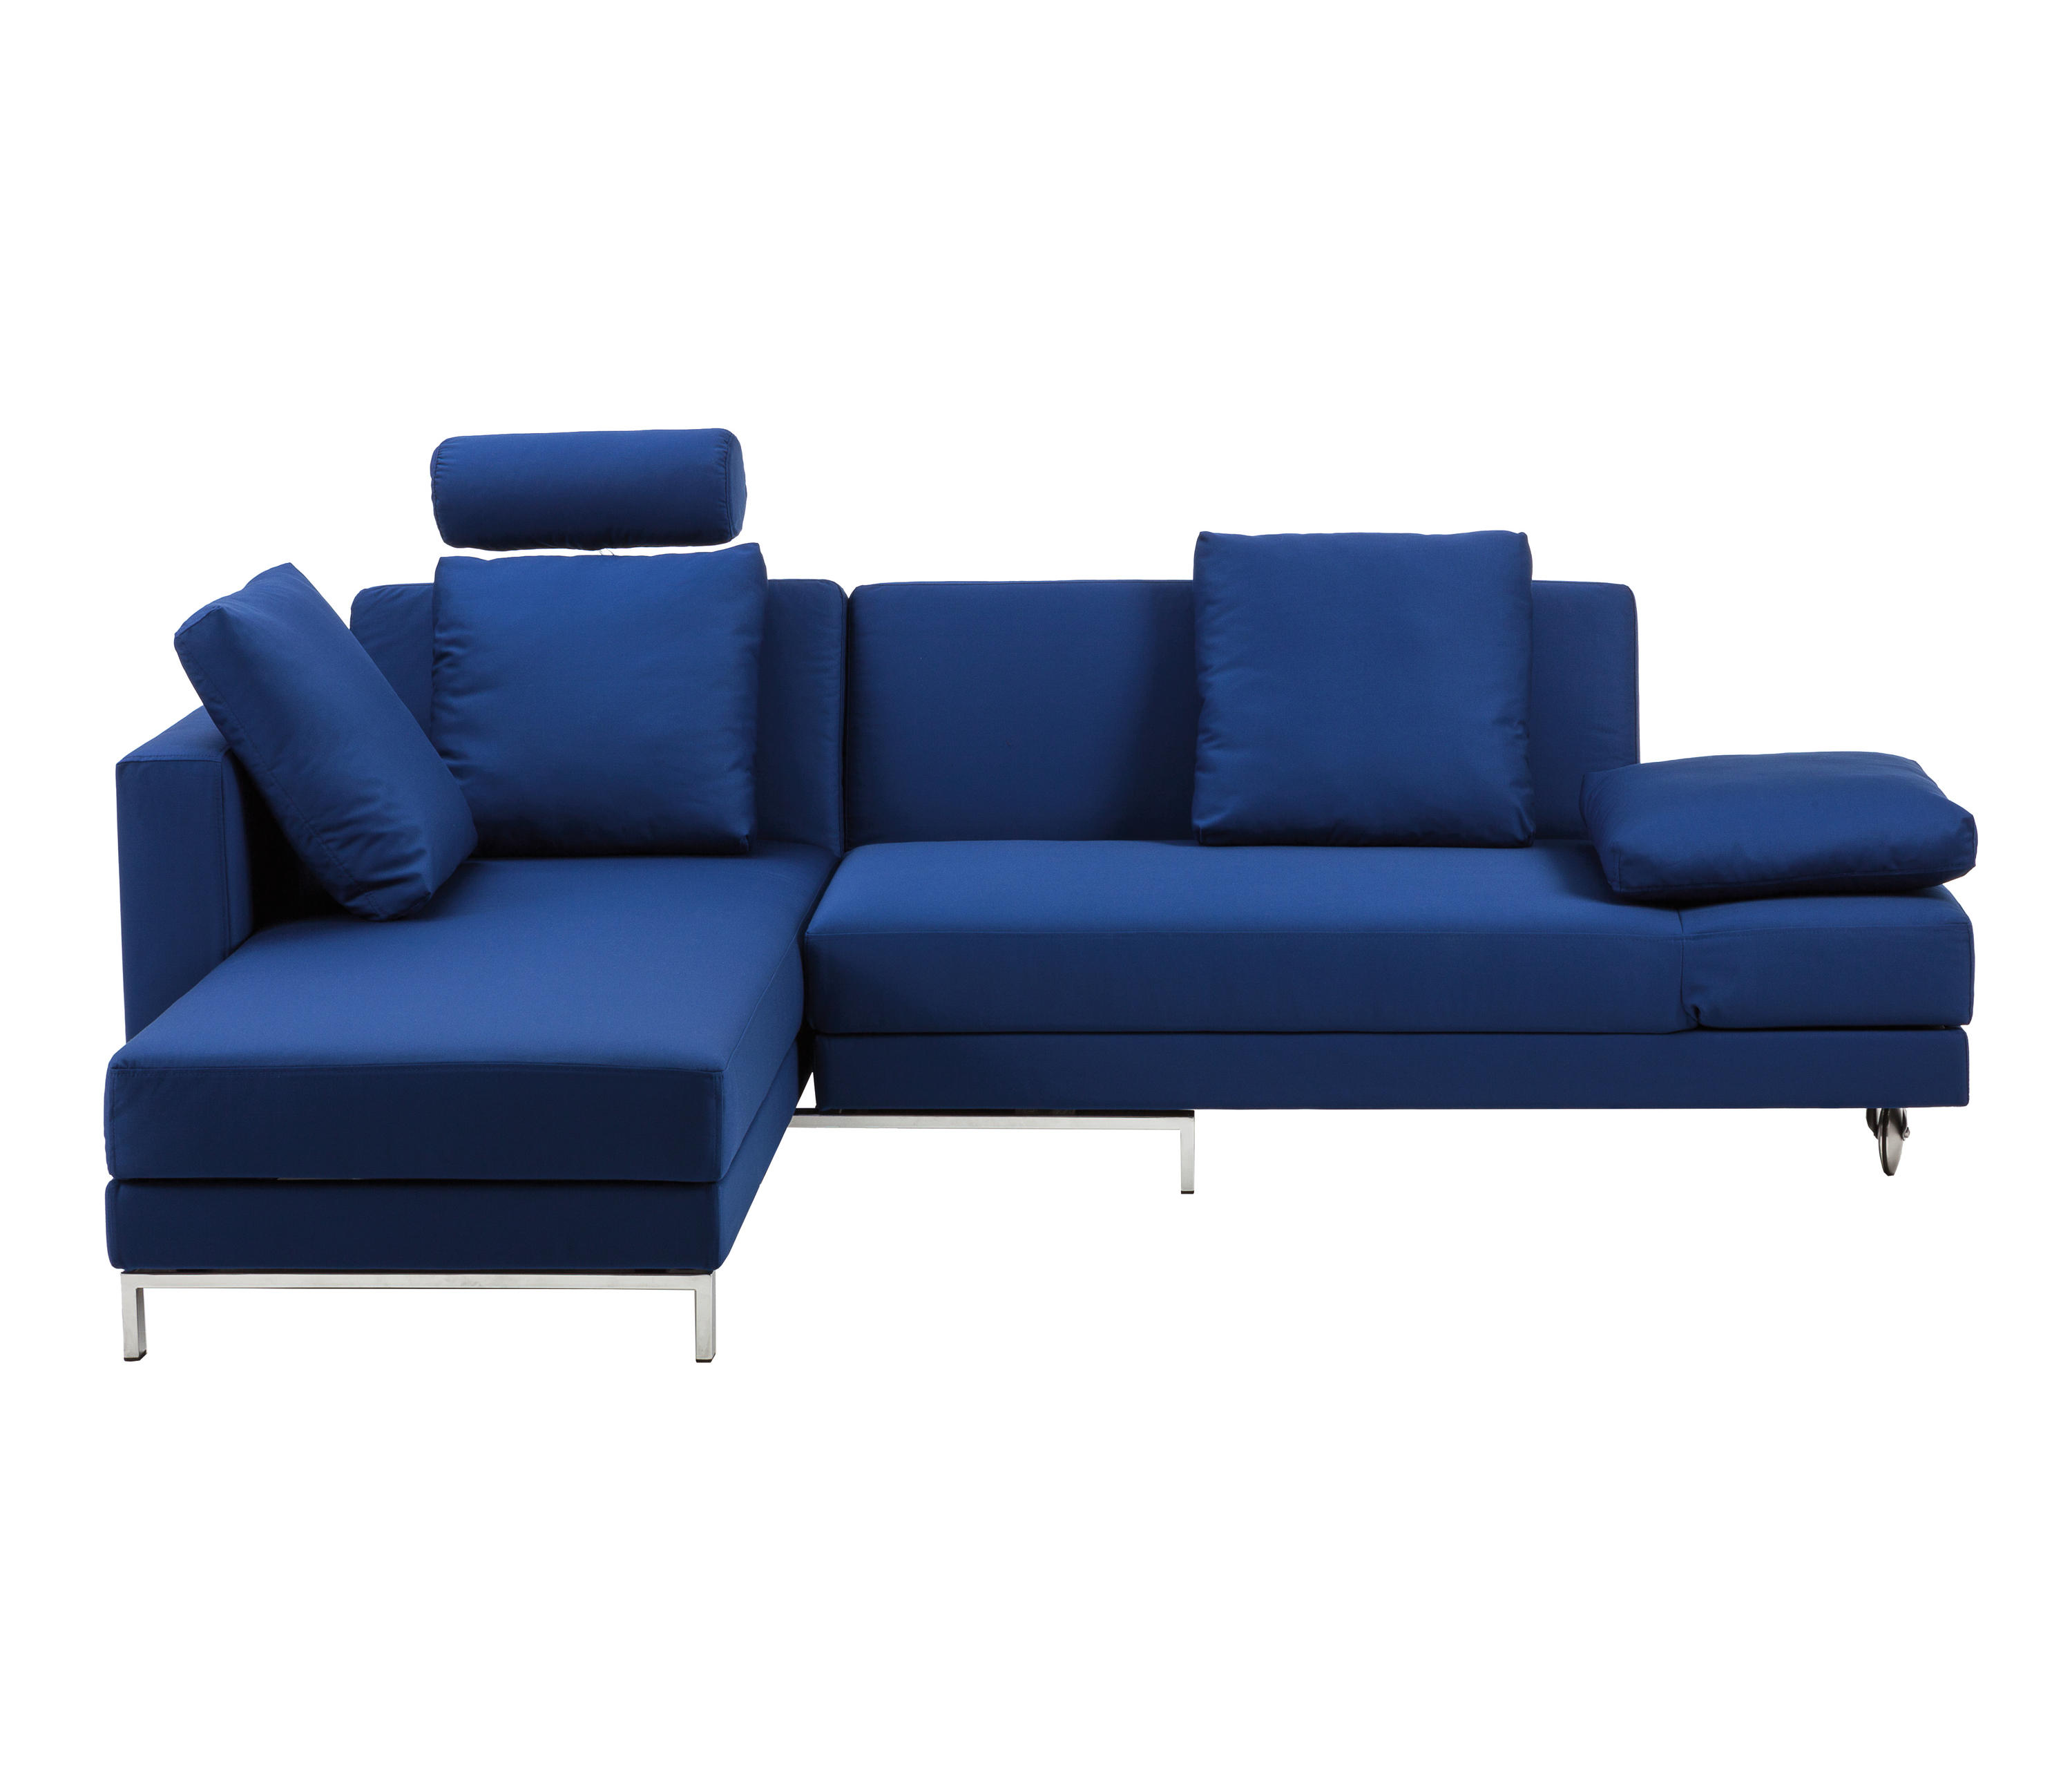 Four Two Bed Sofa Sofas Von Brühl Architonic